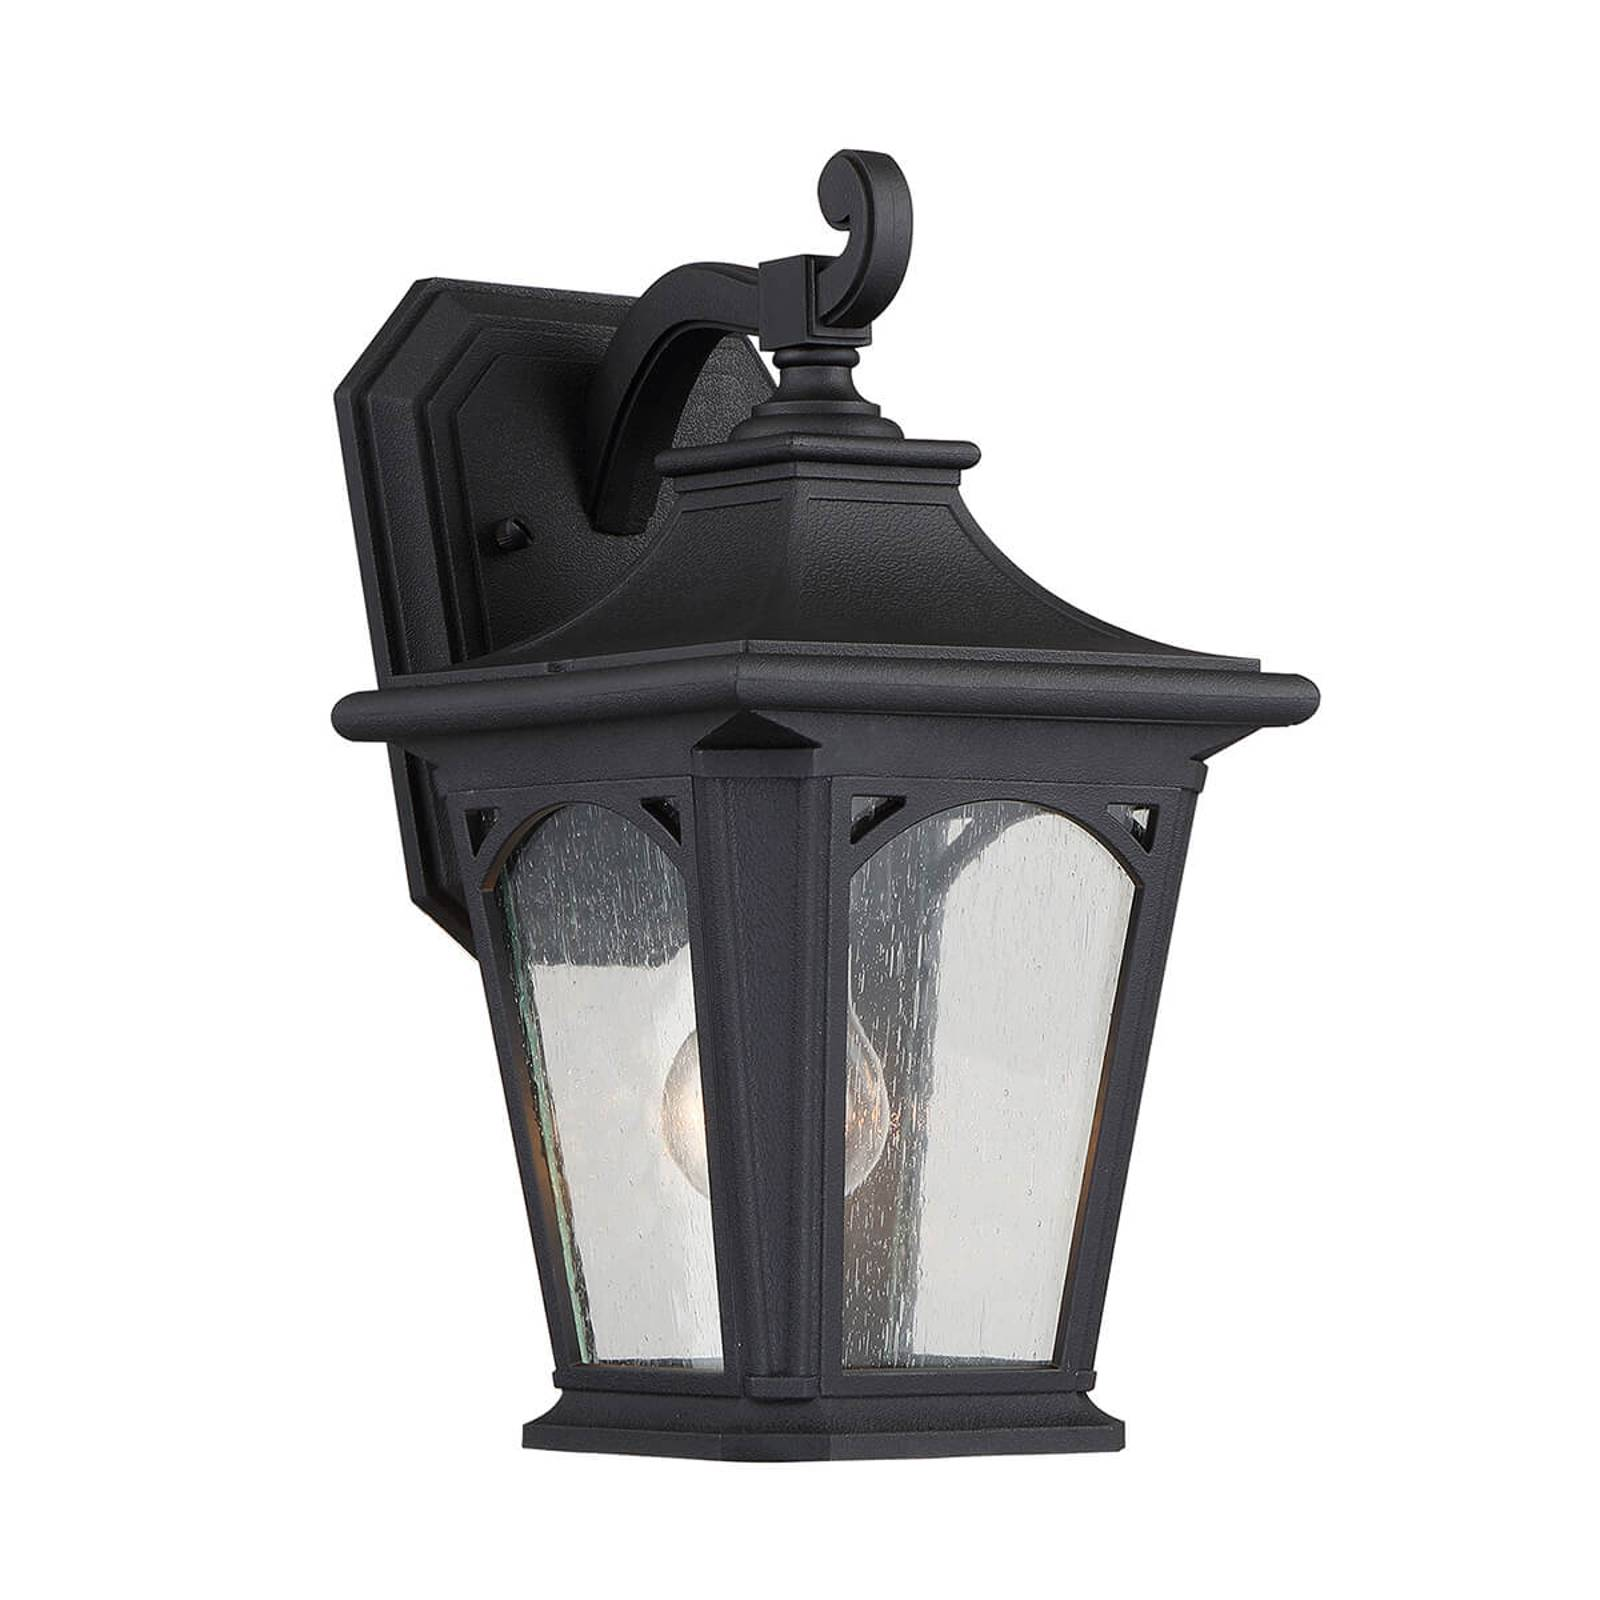 Black Bedford small outdoor wall lamp from QUOIZEL